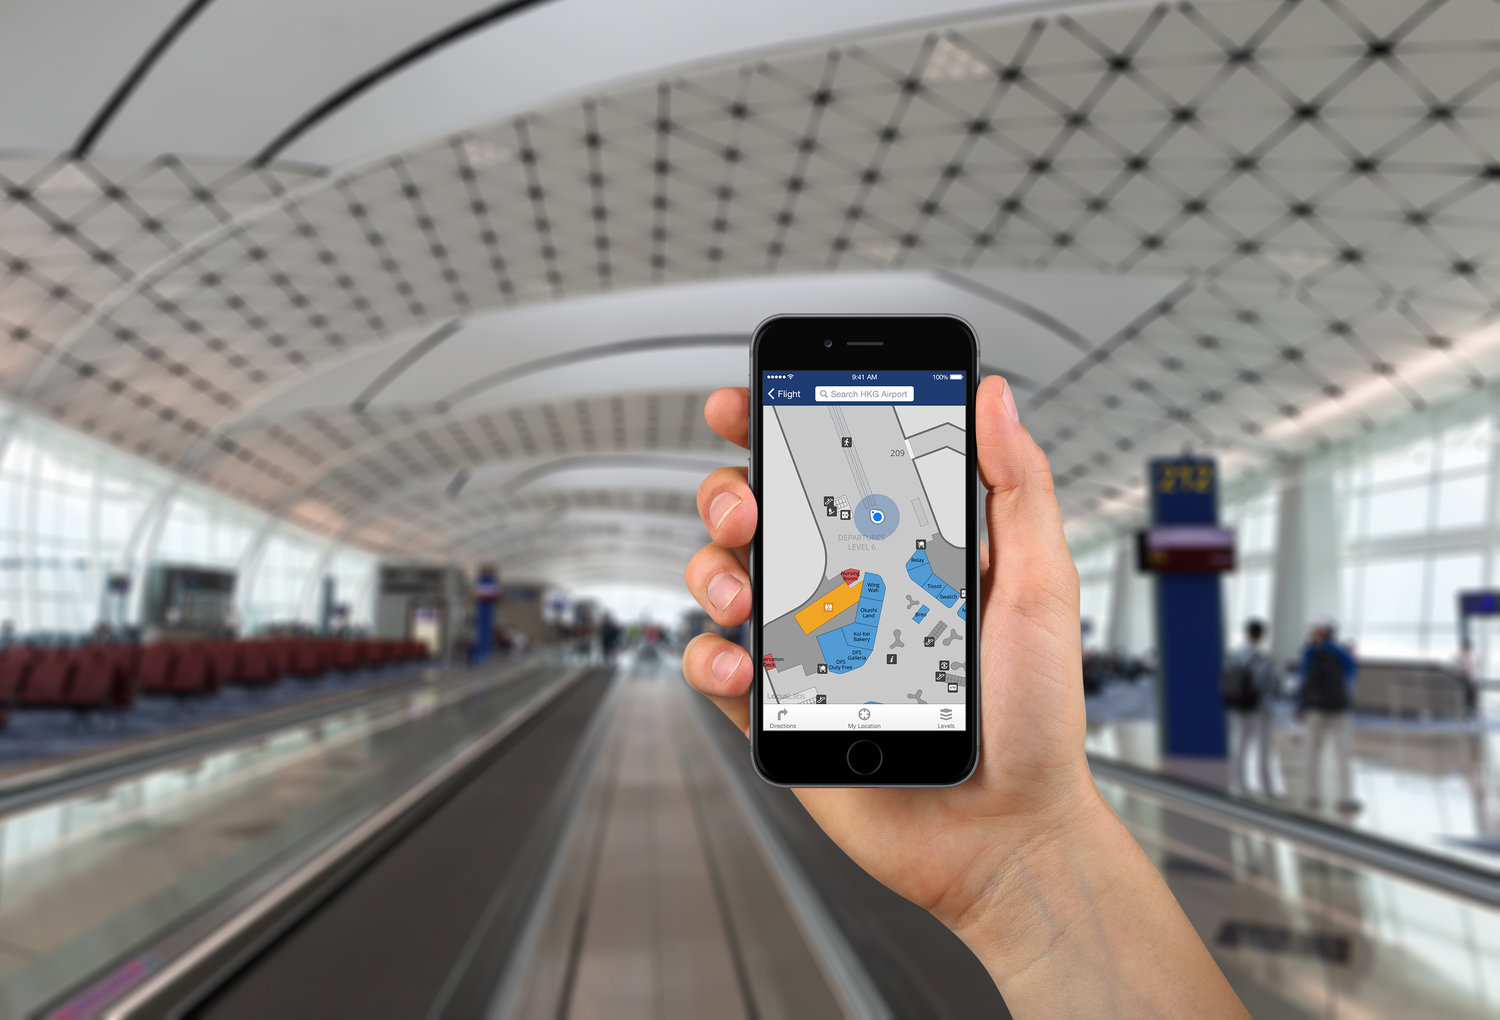 Priority Pass to integrate Indoor Mapping and Wayfinding Features into Mobile App